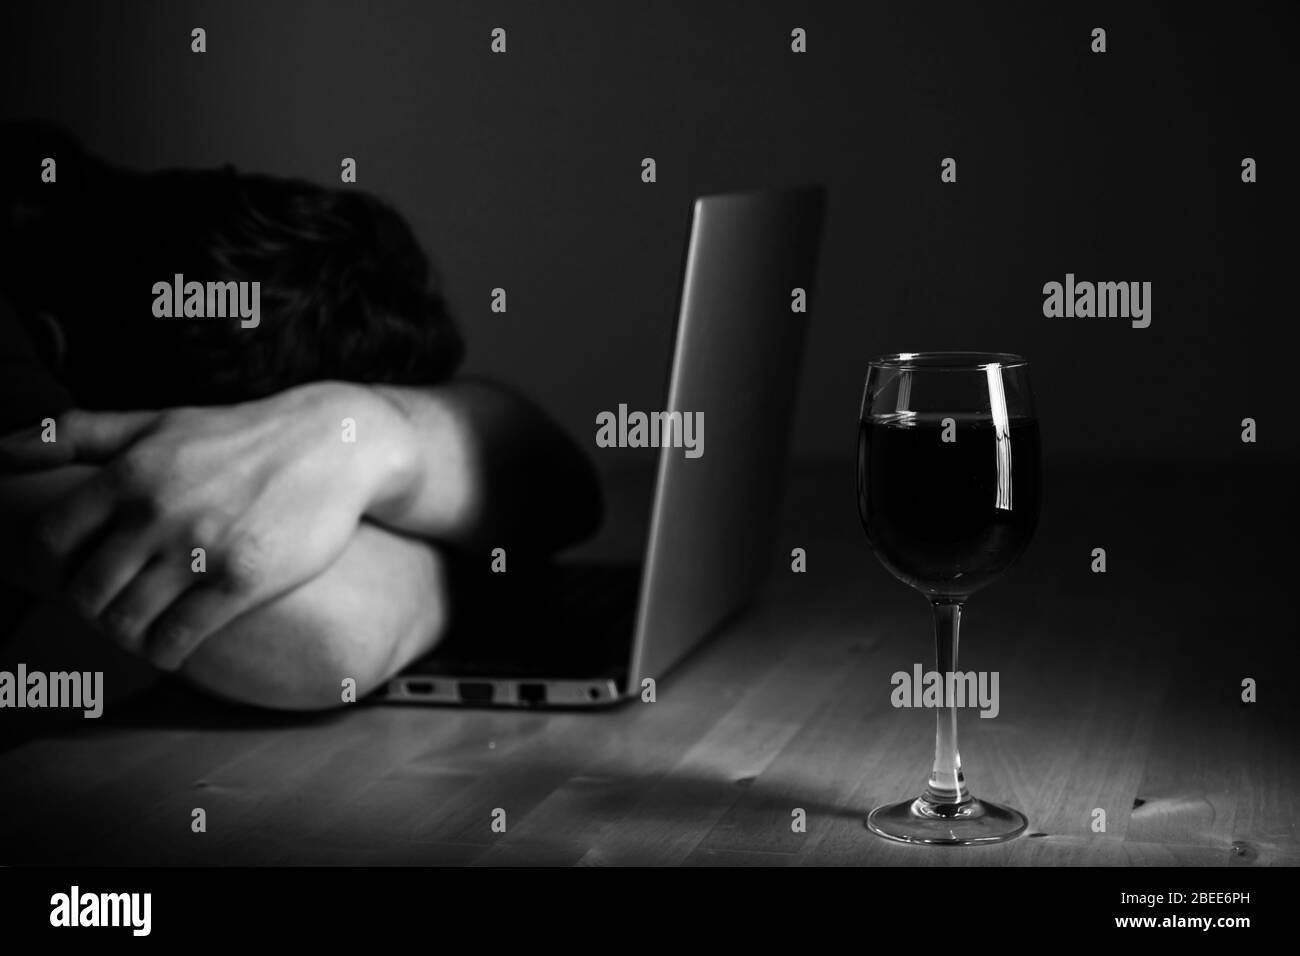 Home office and alcoholism problem - depressed man sitting in front of computer, he hide his face. Wine glass on the table Stock Photo